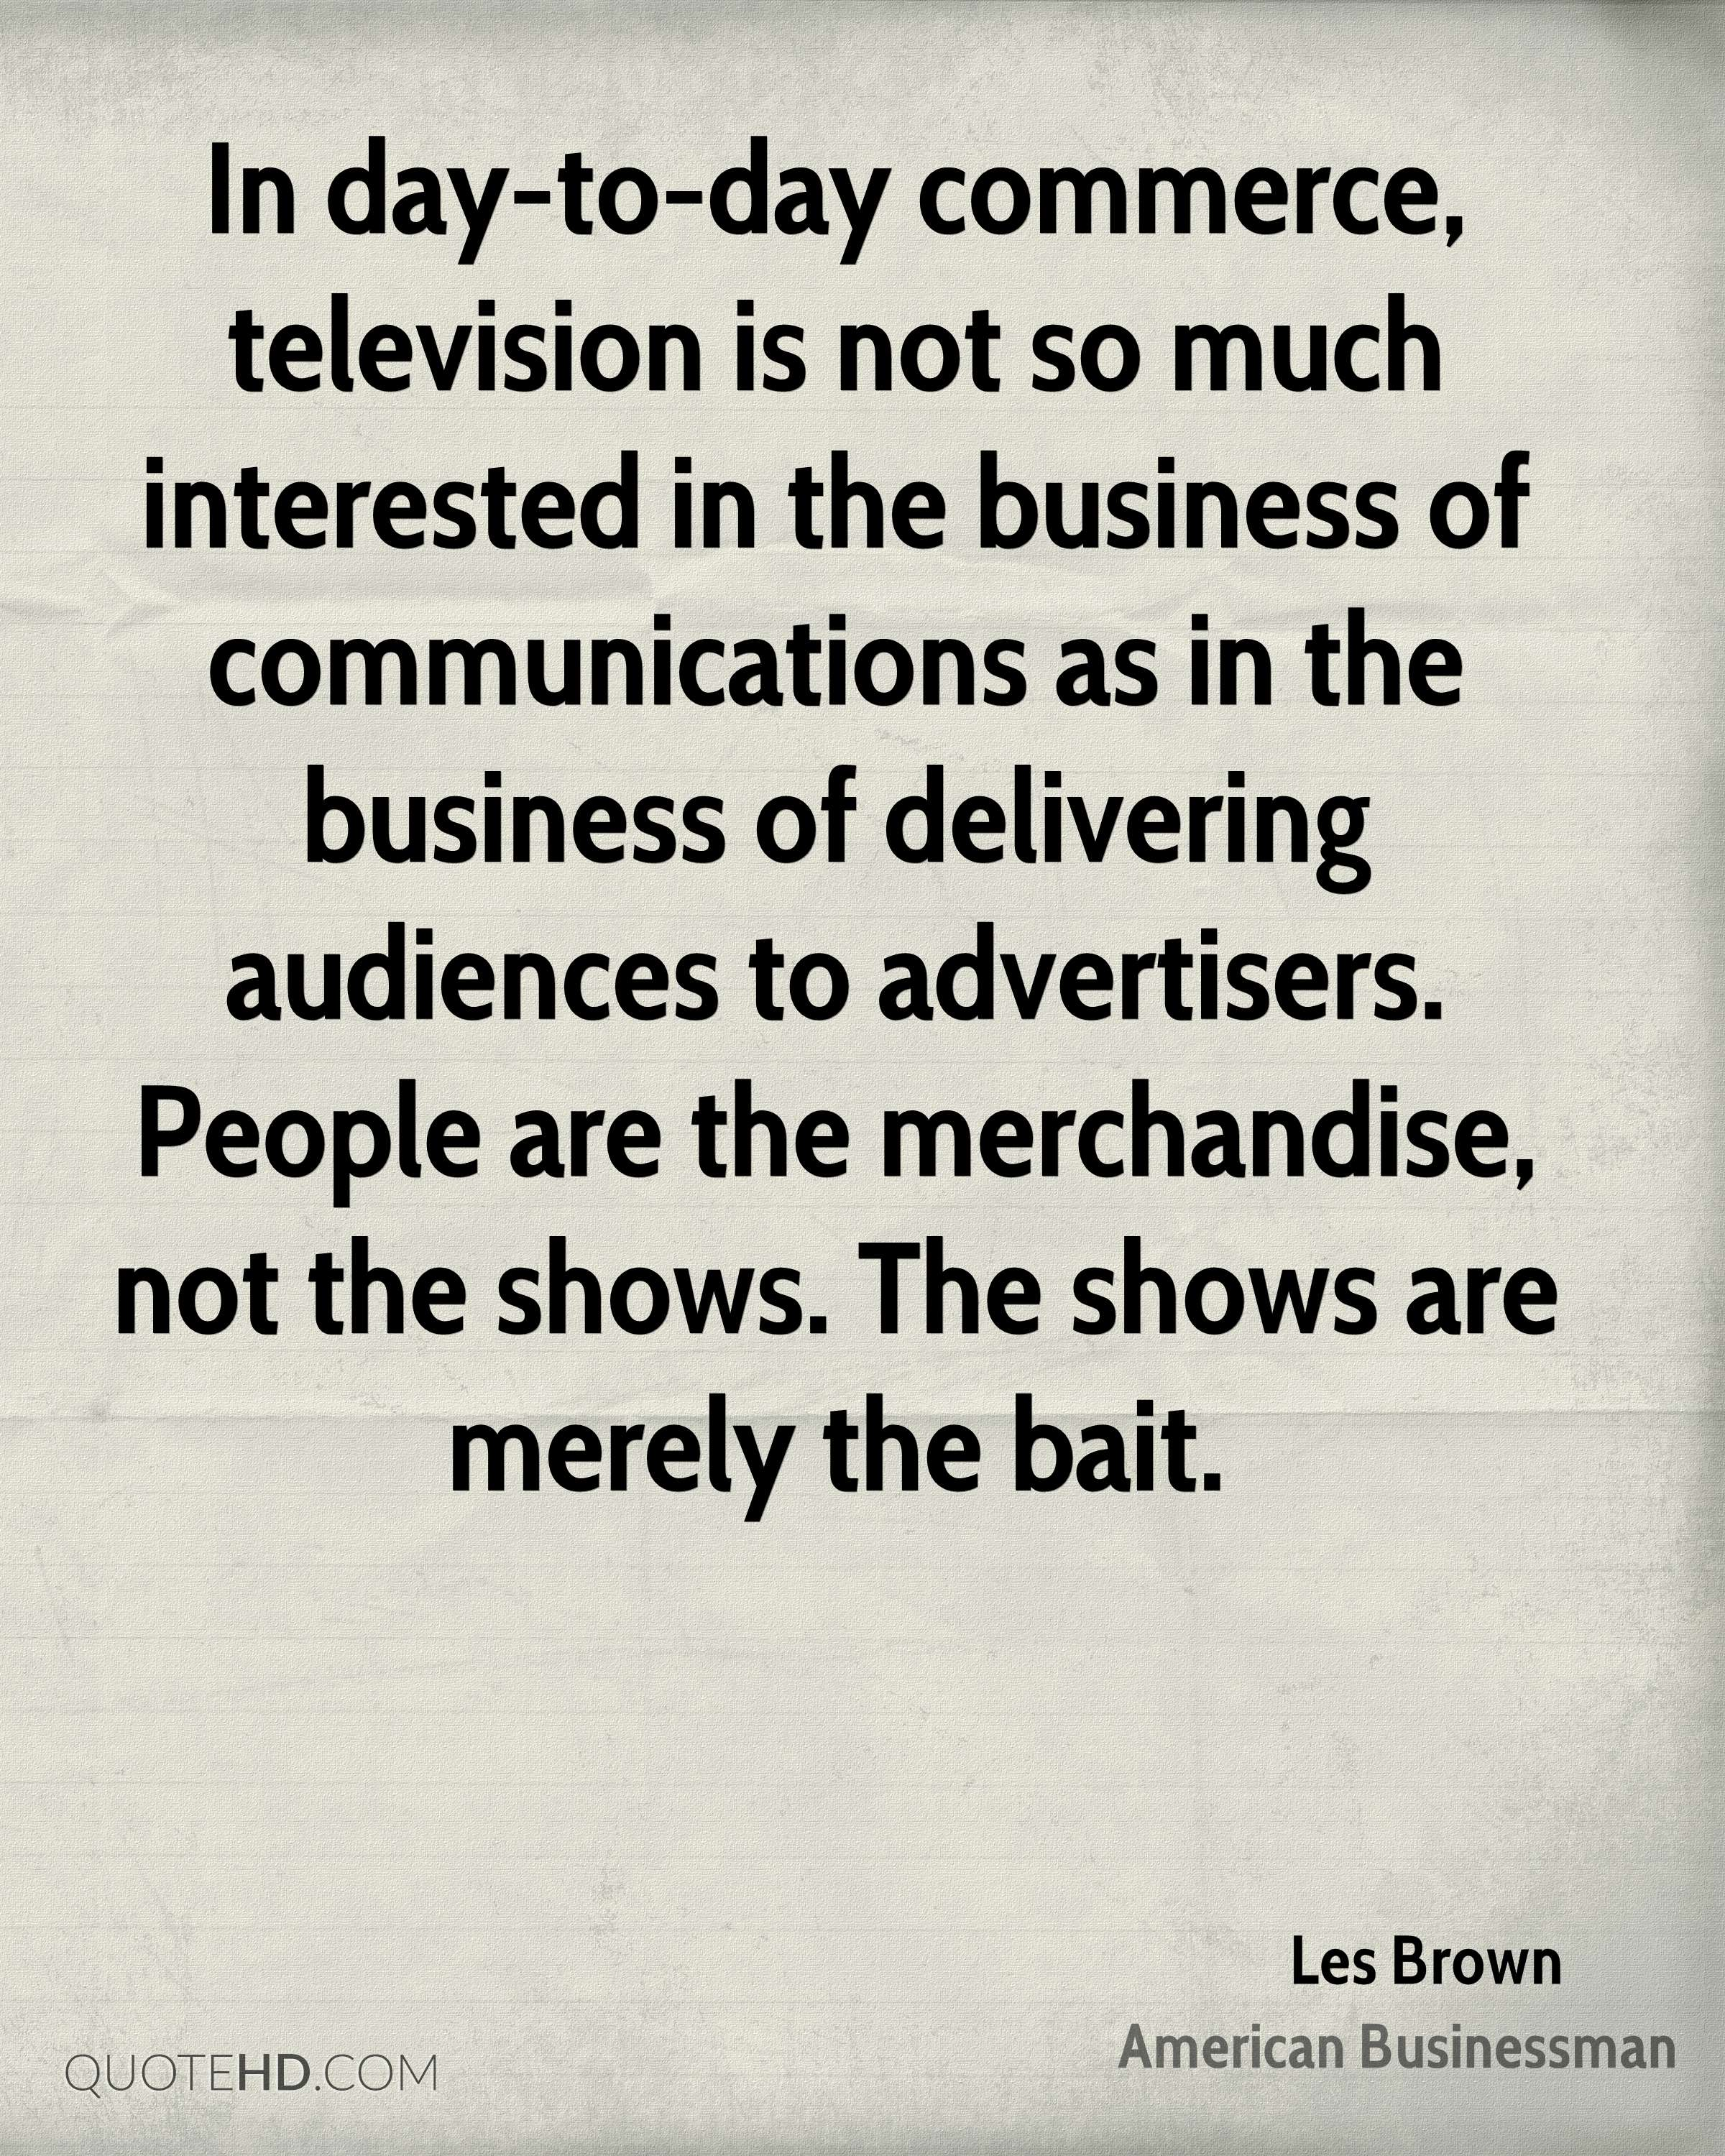 In day-to-day commerce, television is not so much interested in the business of communications as in the business of delivering audiences to advertisers. People are the merchandise, not the shows. The shows are merely the bait.